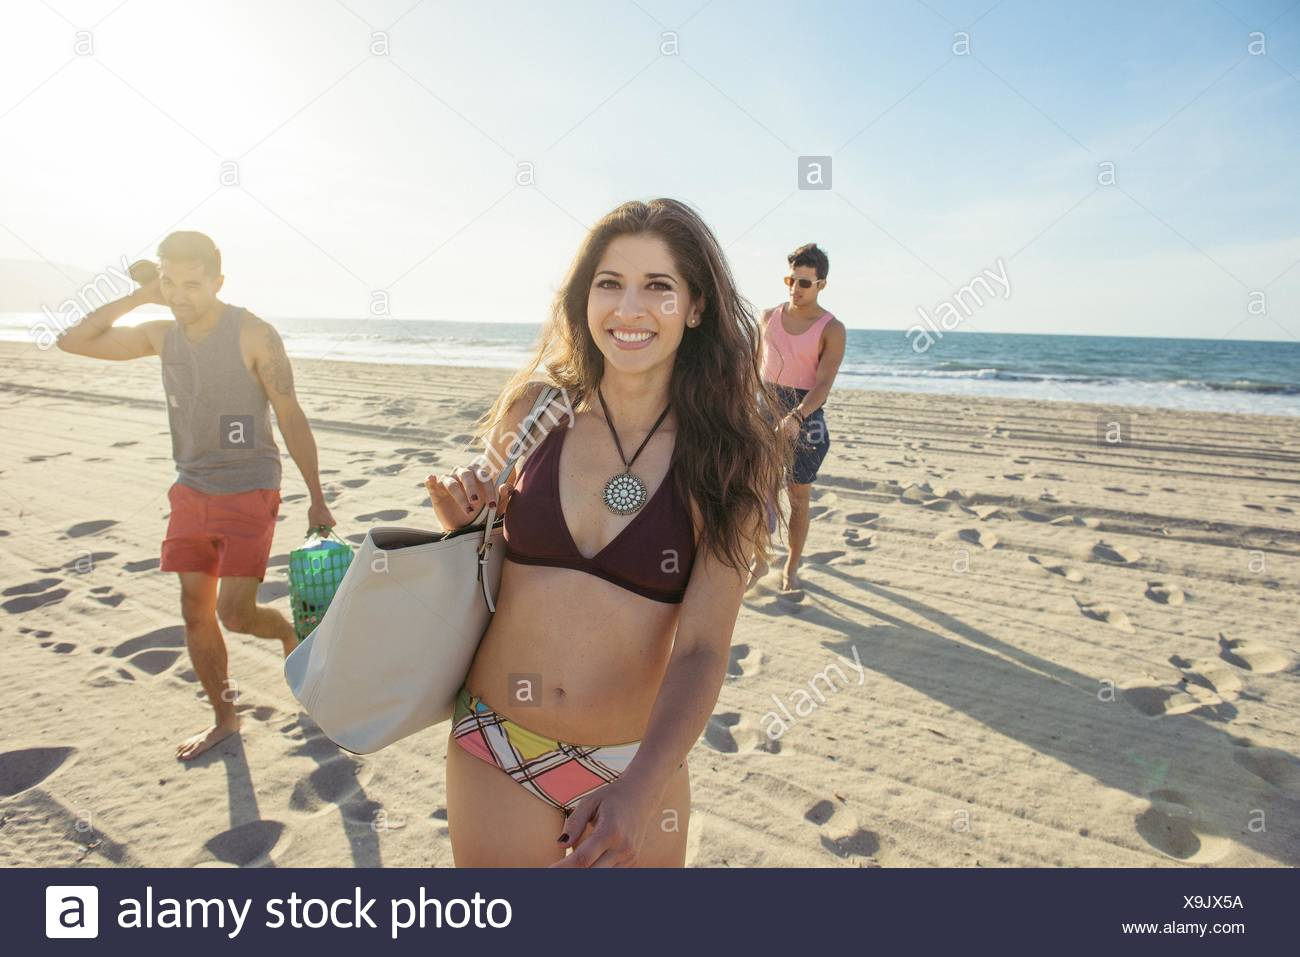 Groupe d'amis walking on beach Photo Stock